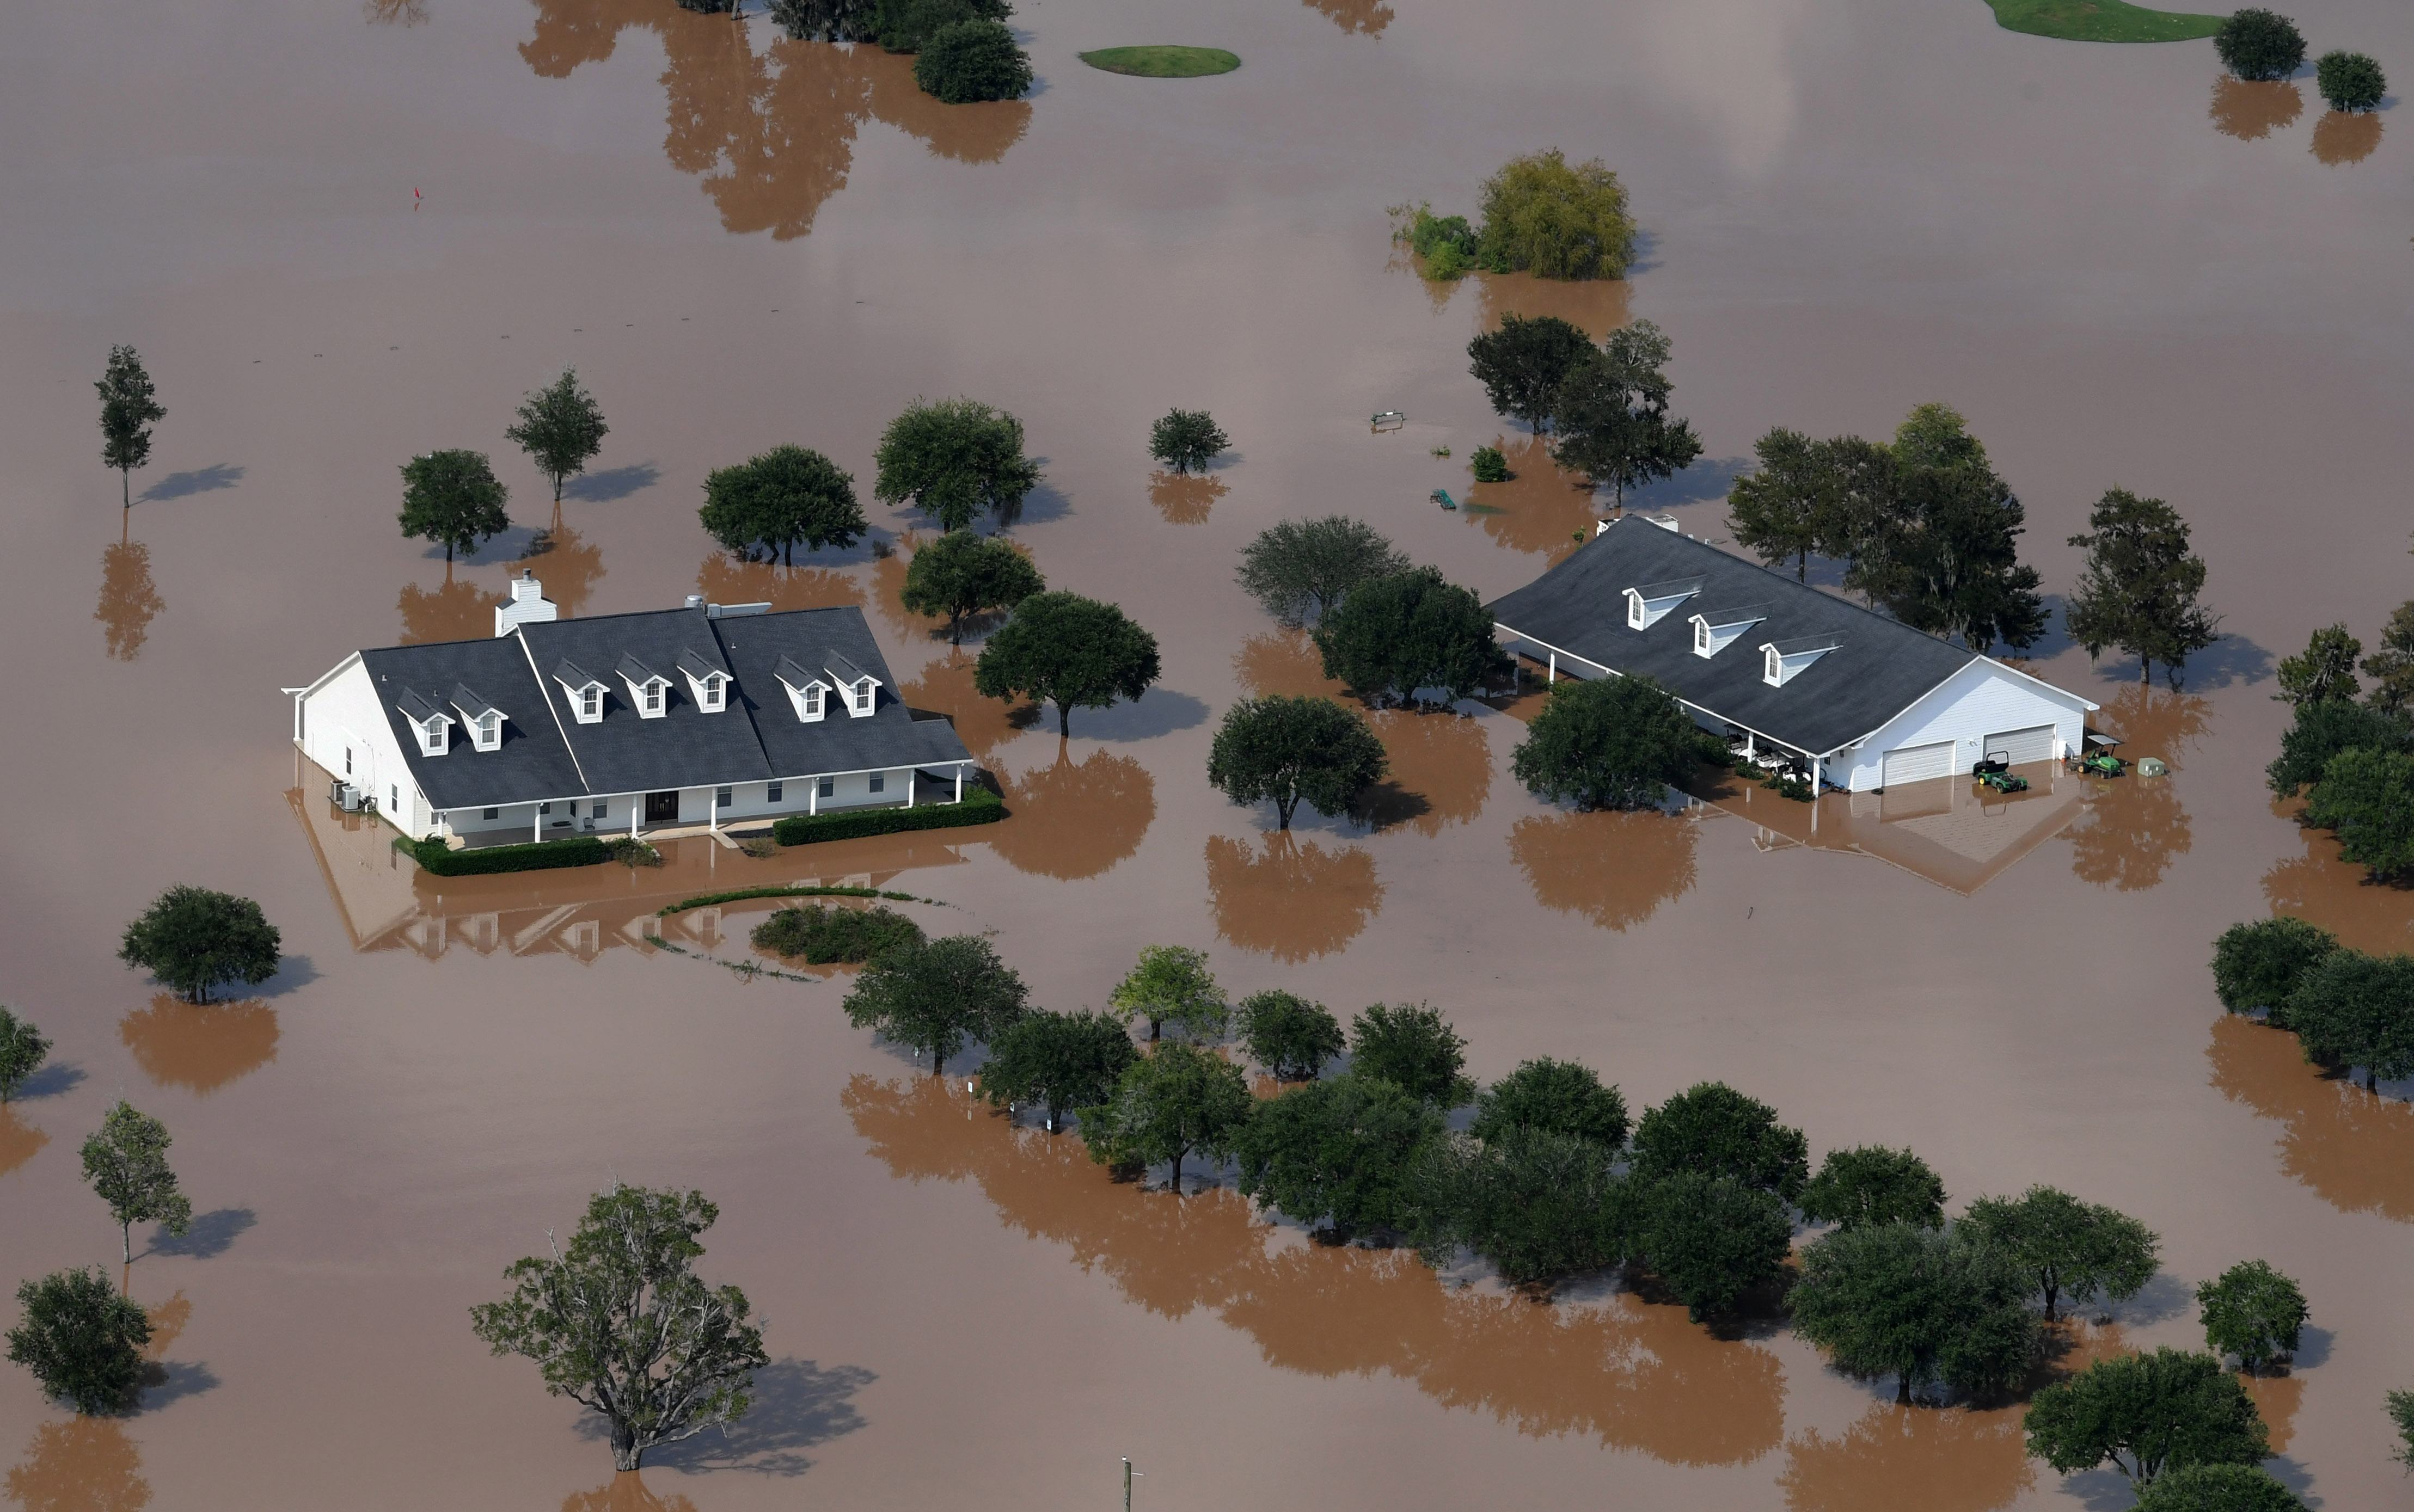 Rising brown floodwaters engulf a pair of white, two-story single-family homes